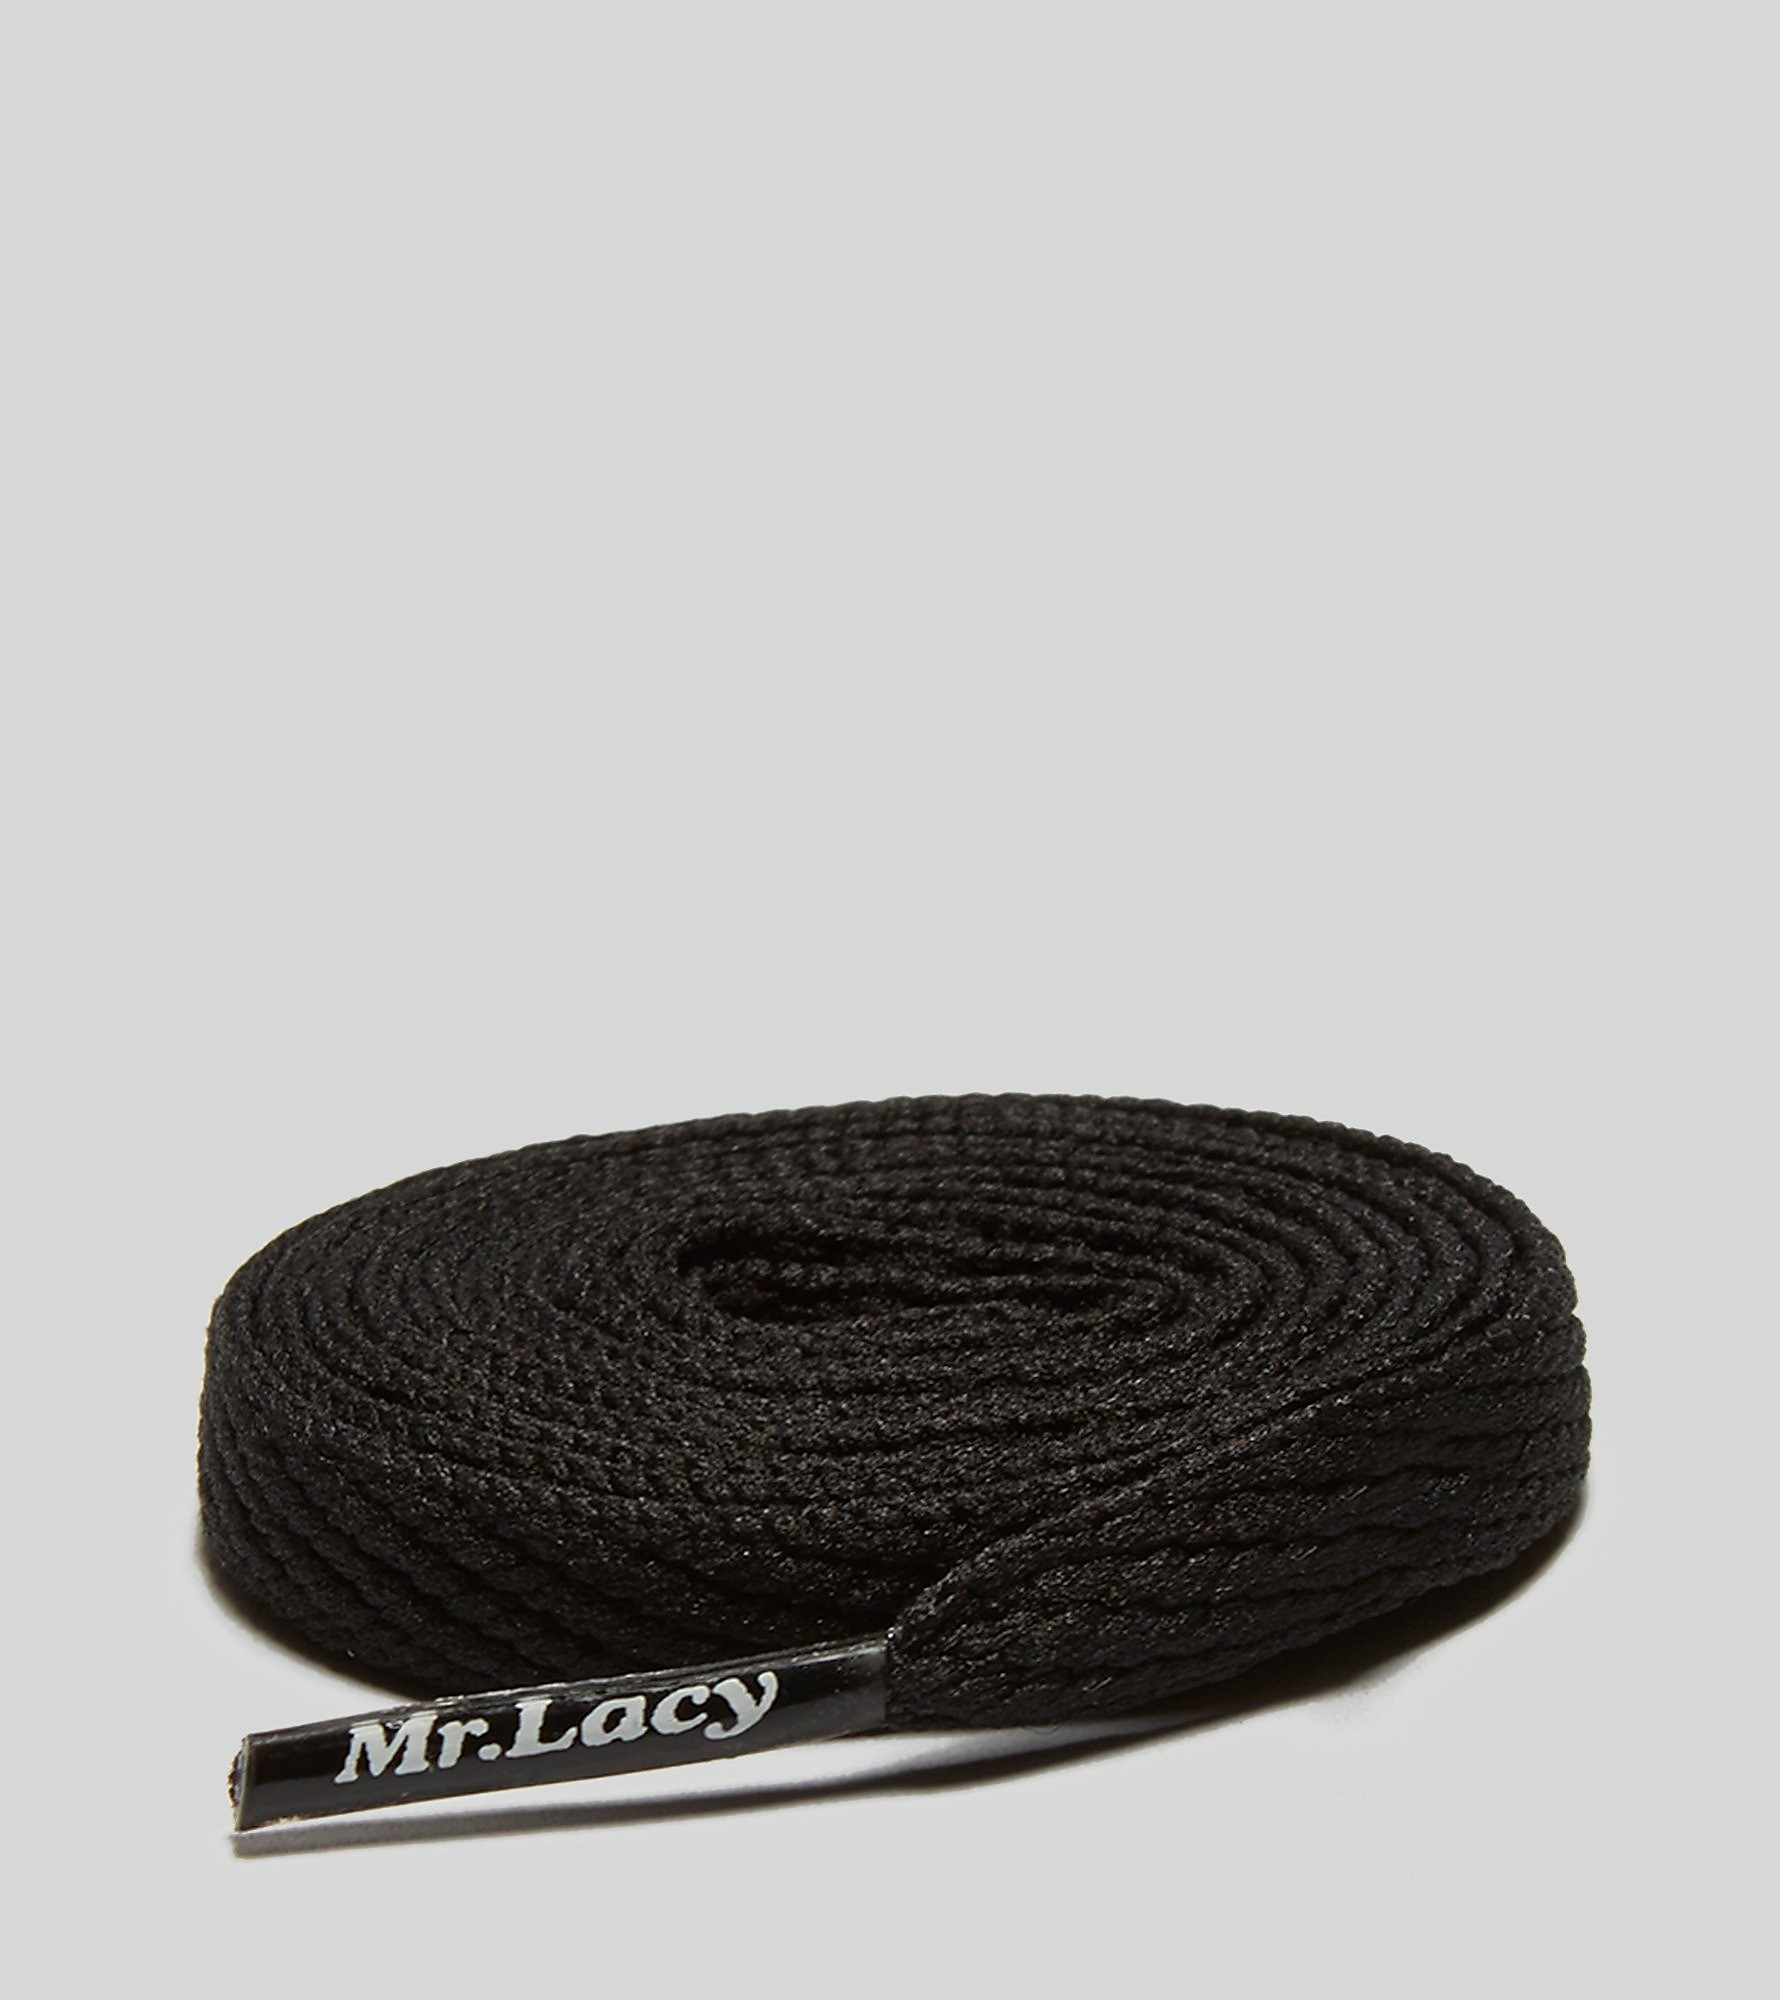 Mr Lacy Smallie Laces